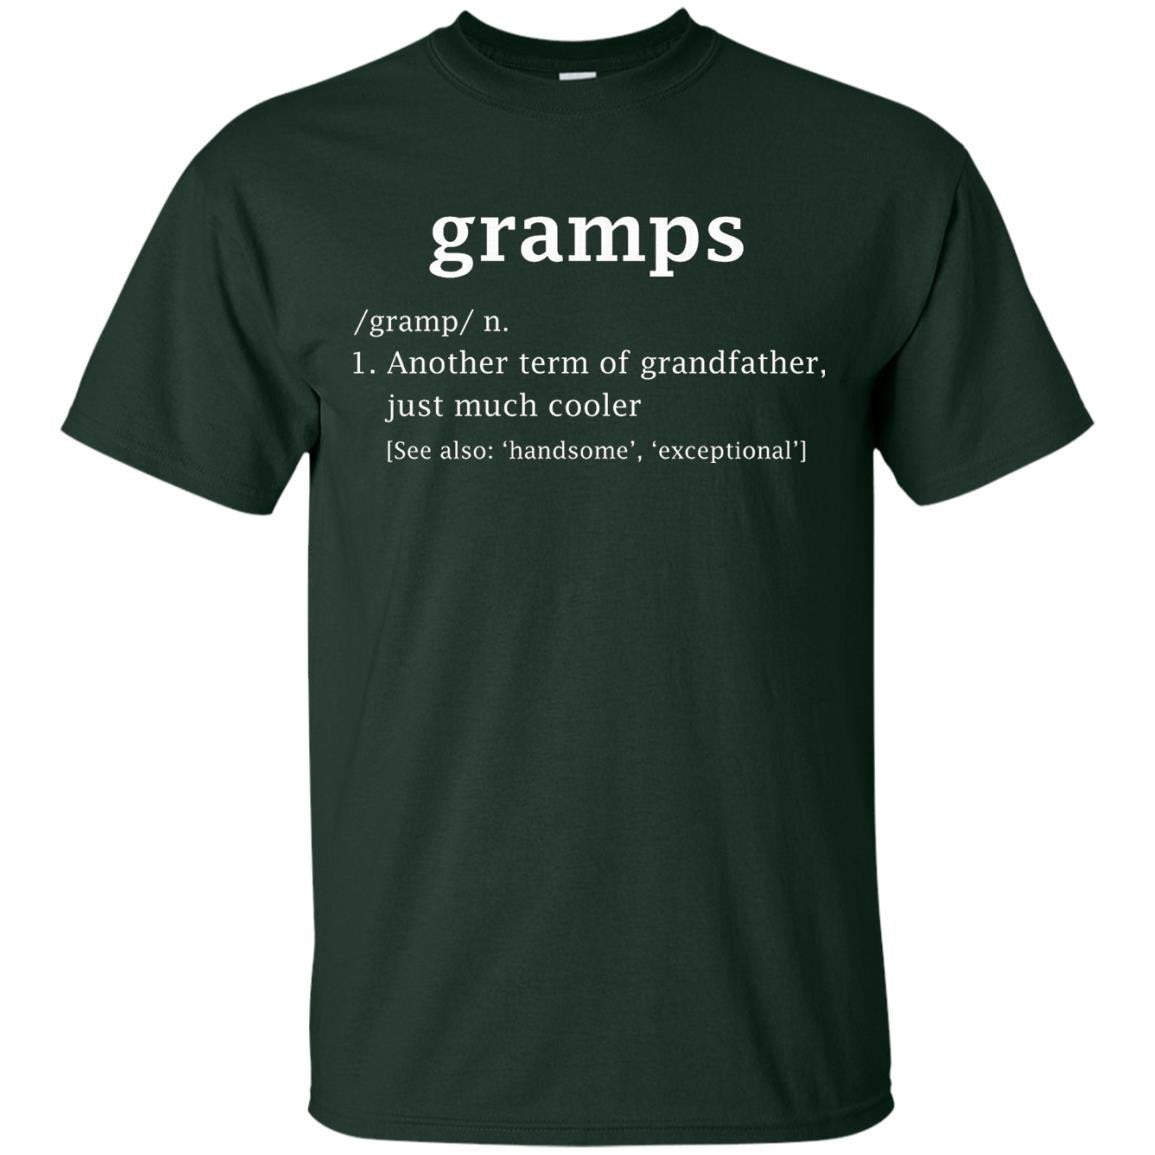 Gramps Definition Funny Gift For Grandfather T Shirt - T-Shirt